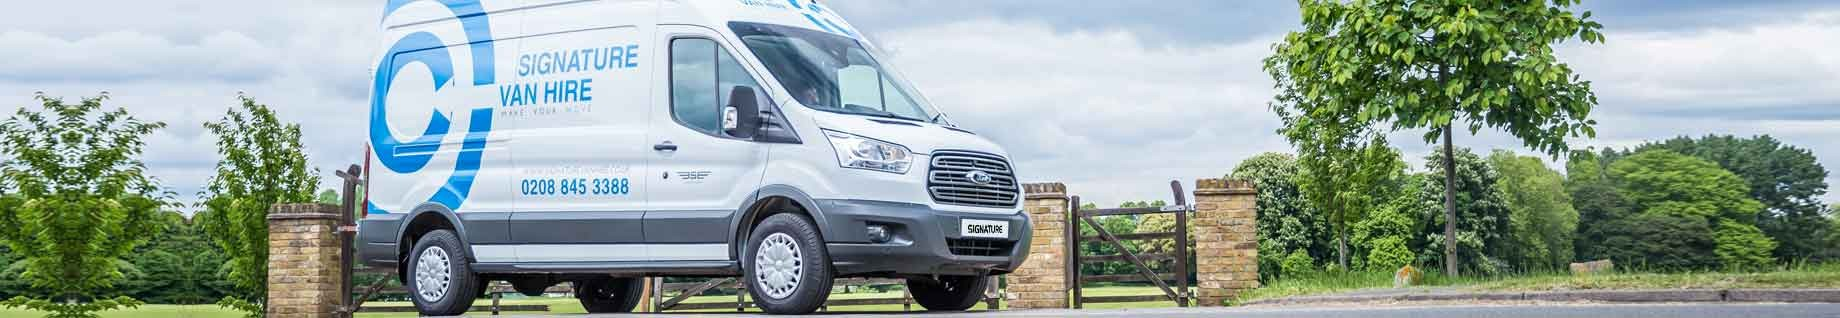 Signature Van Hire